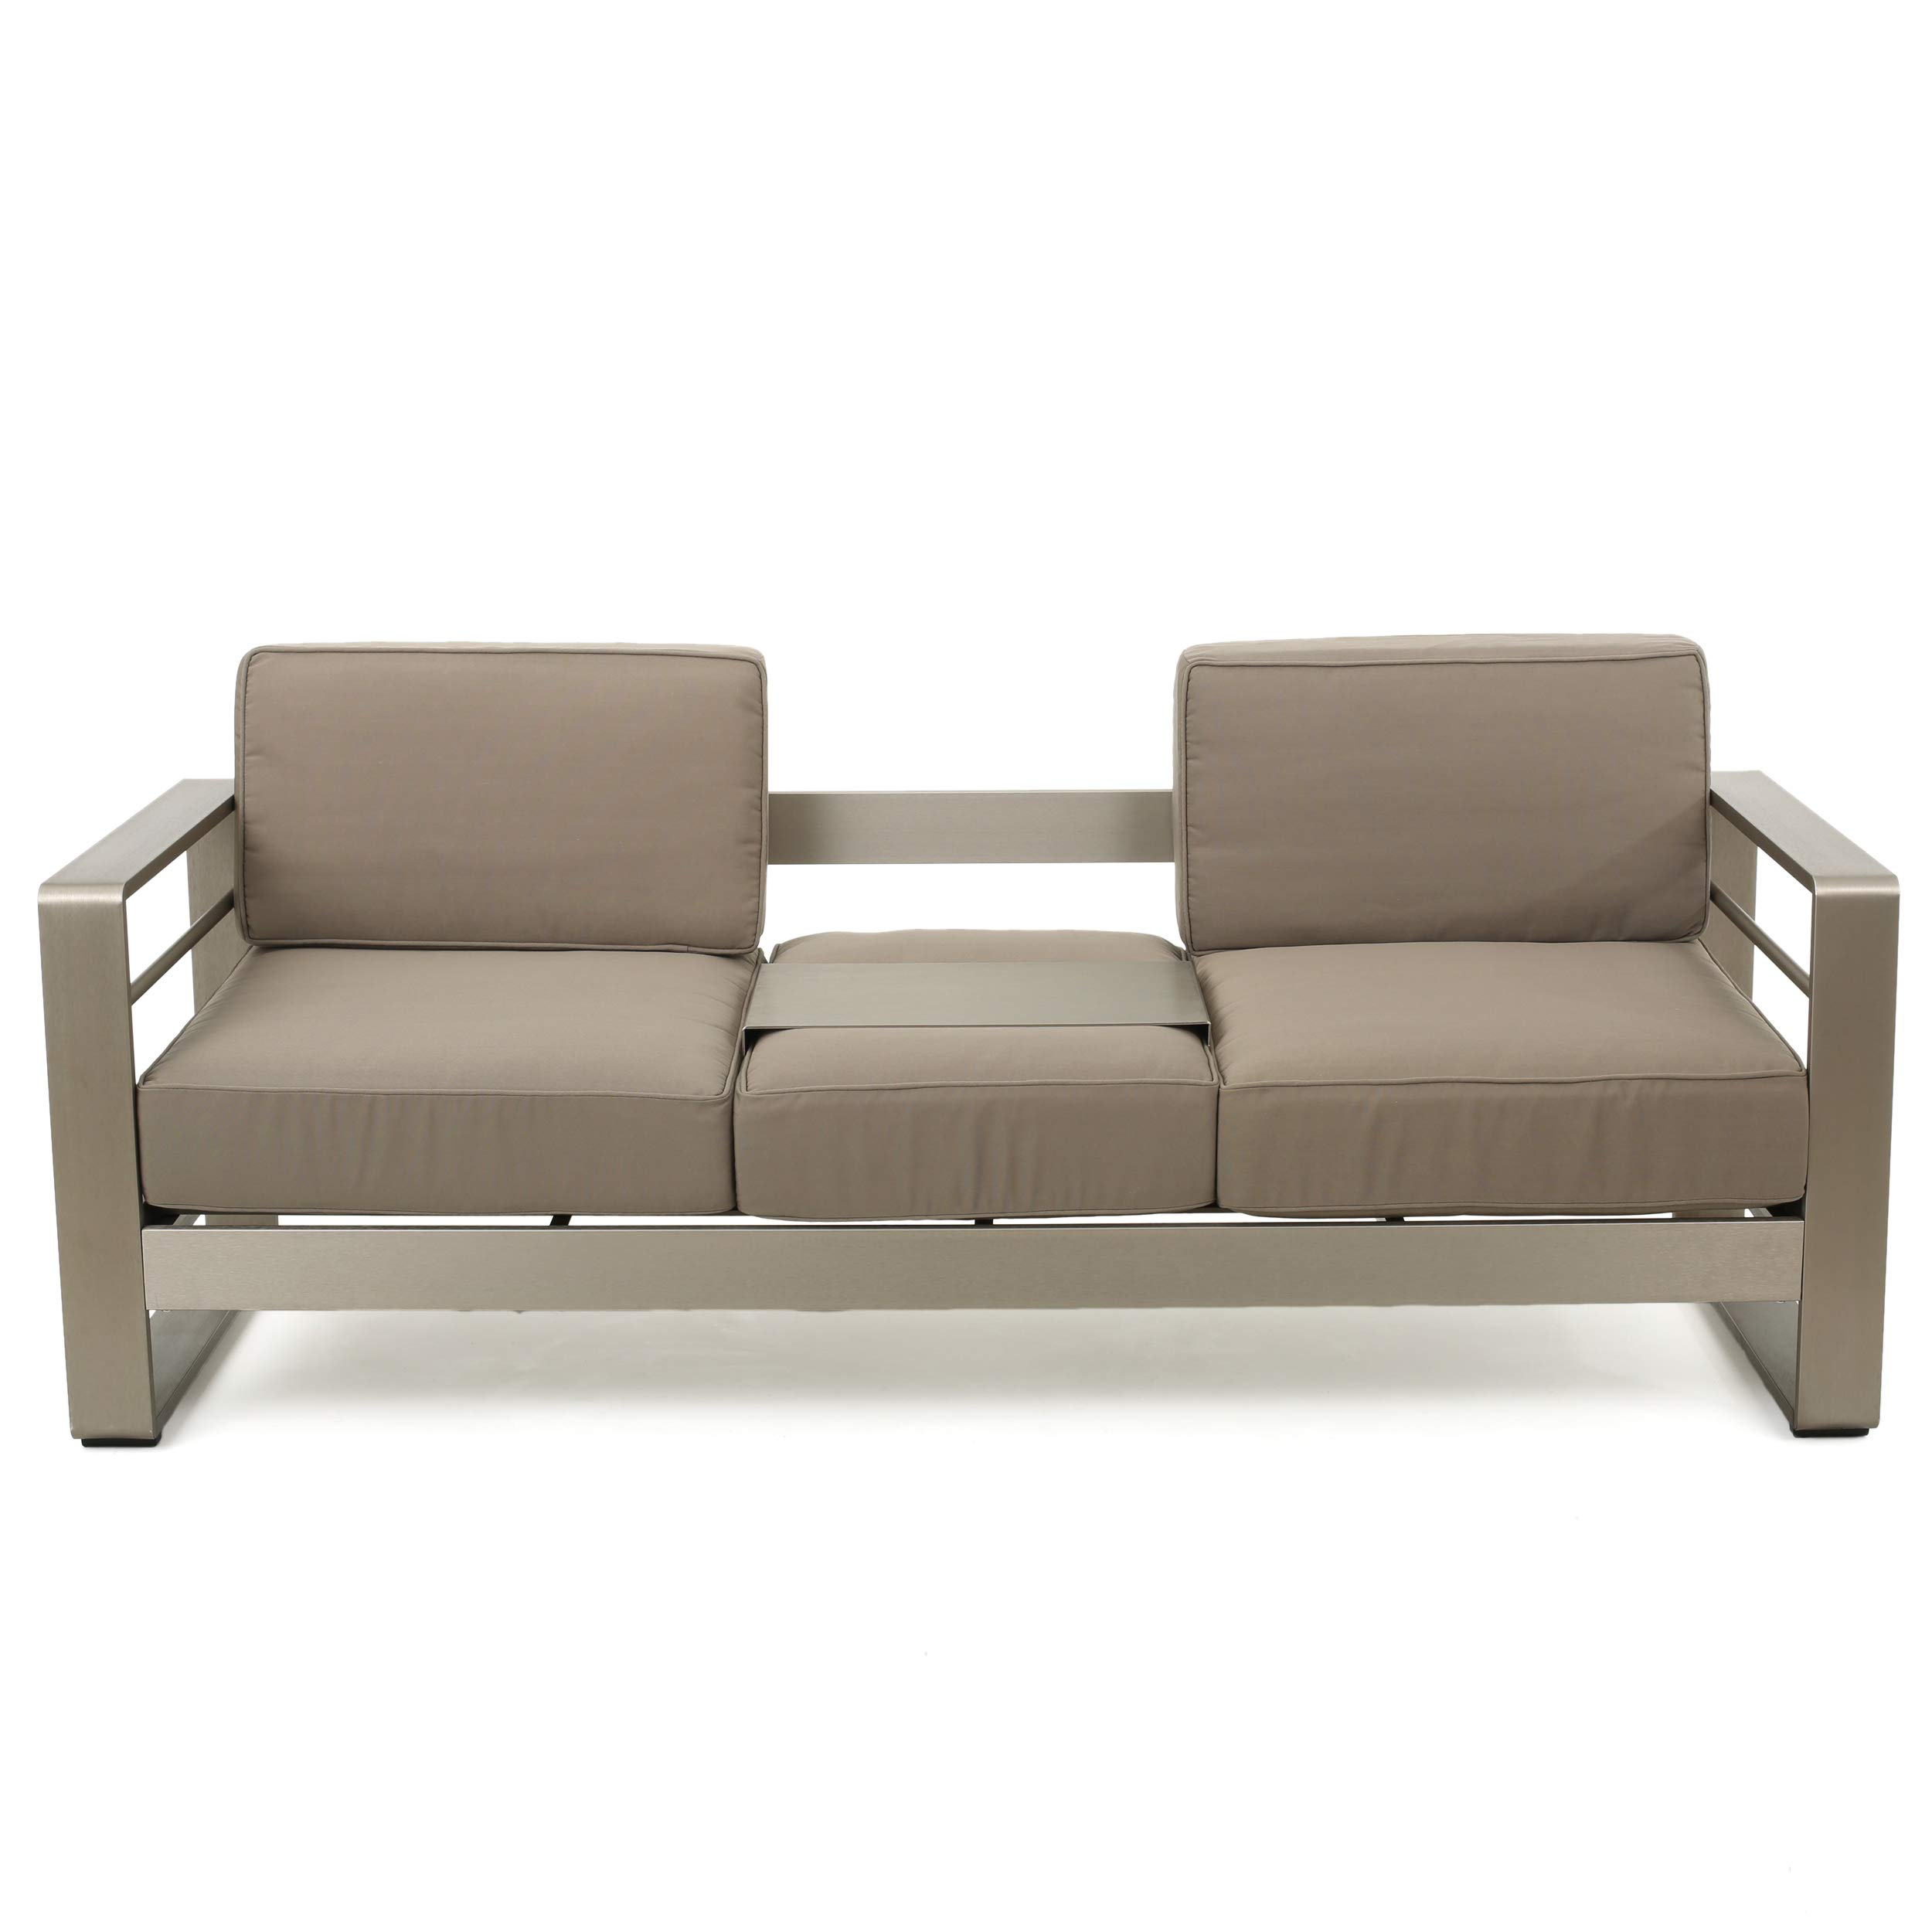 Christopher Knight Home 299431 Crested Bay Outdoor Aluminum Khaki Sofa with Tray by Christopher Knight Home